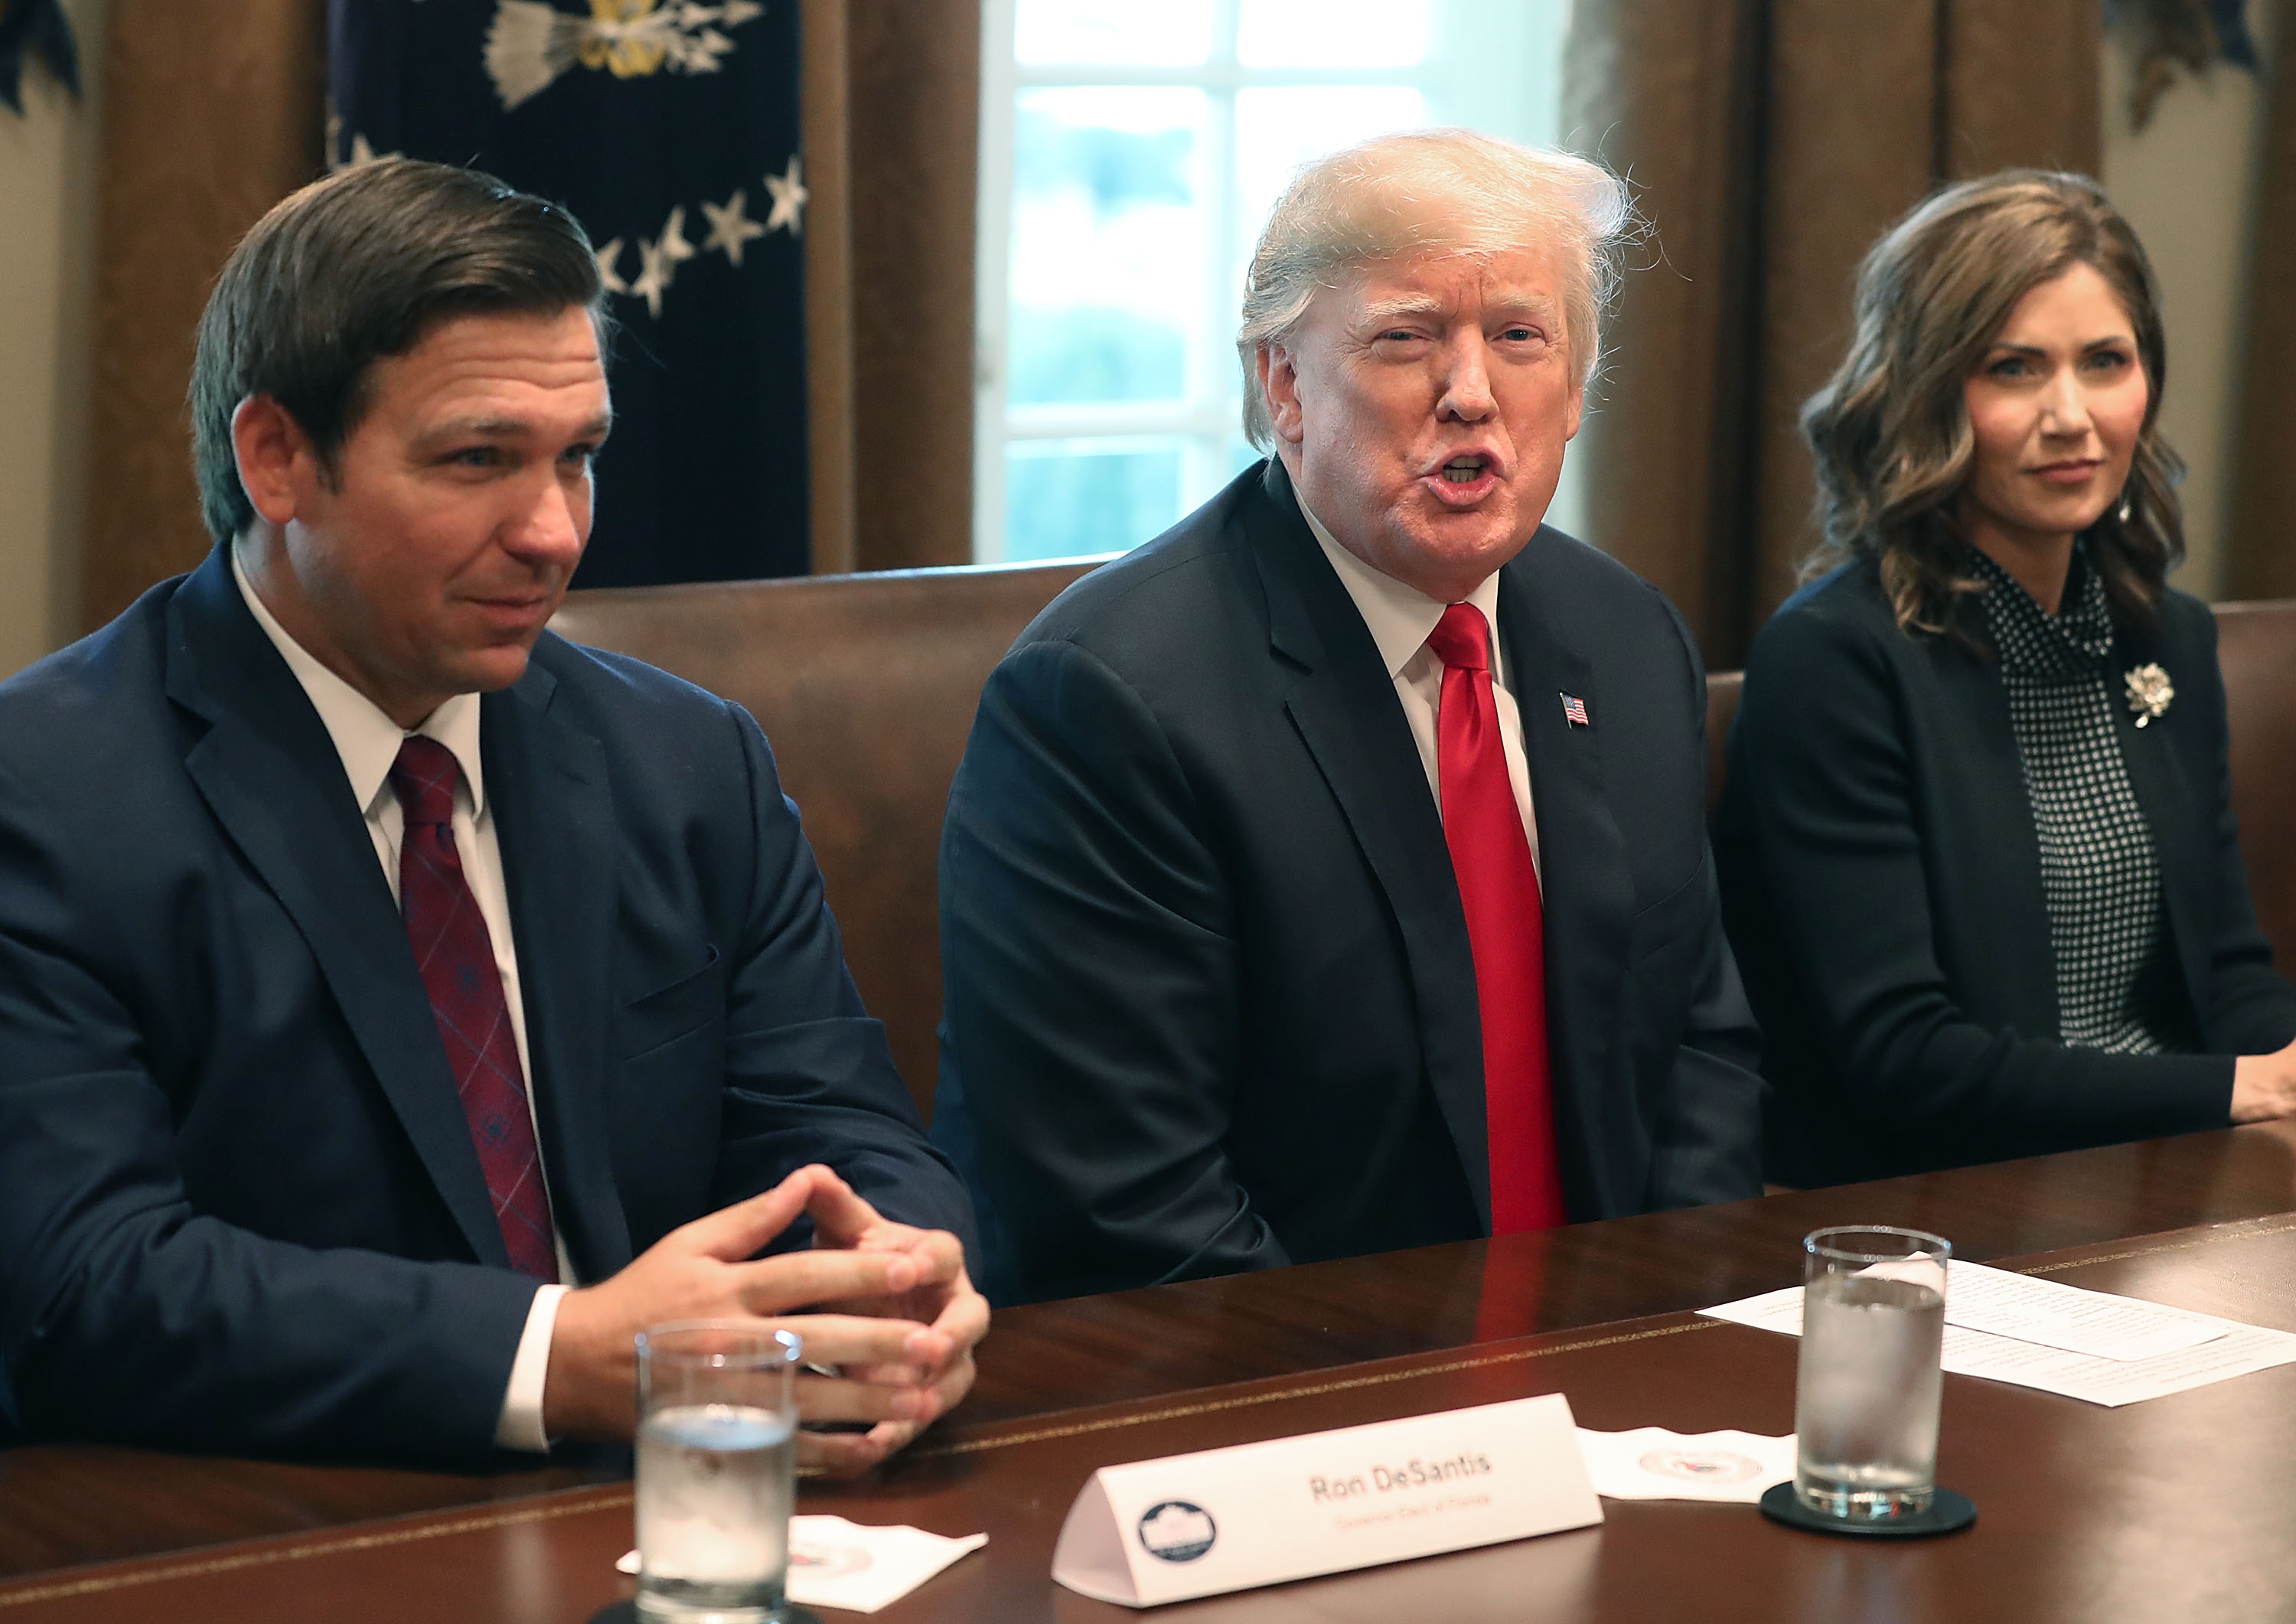 Florida Governor-elect Ron DeSantis (R) sits next to U.S. President Donald Trump and Governor of South Dakota-elect Kristi Noem during a meeting with Governors elects in the Cabinet Room at the White House on December 13, 2018 in Washington, DC. (Photo by Mark Wilson/Getty Images)